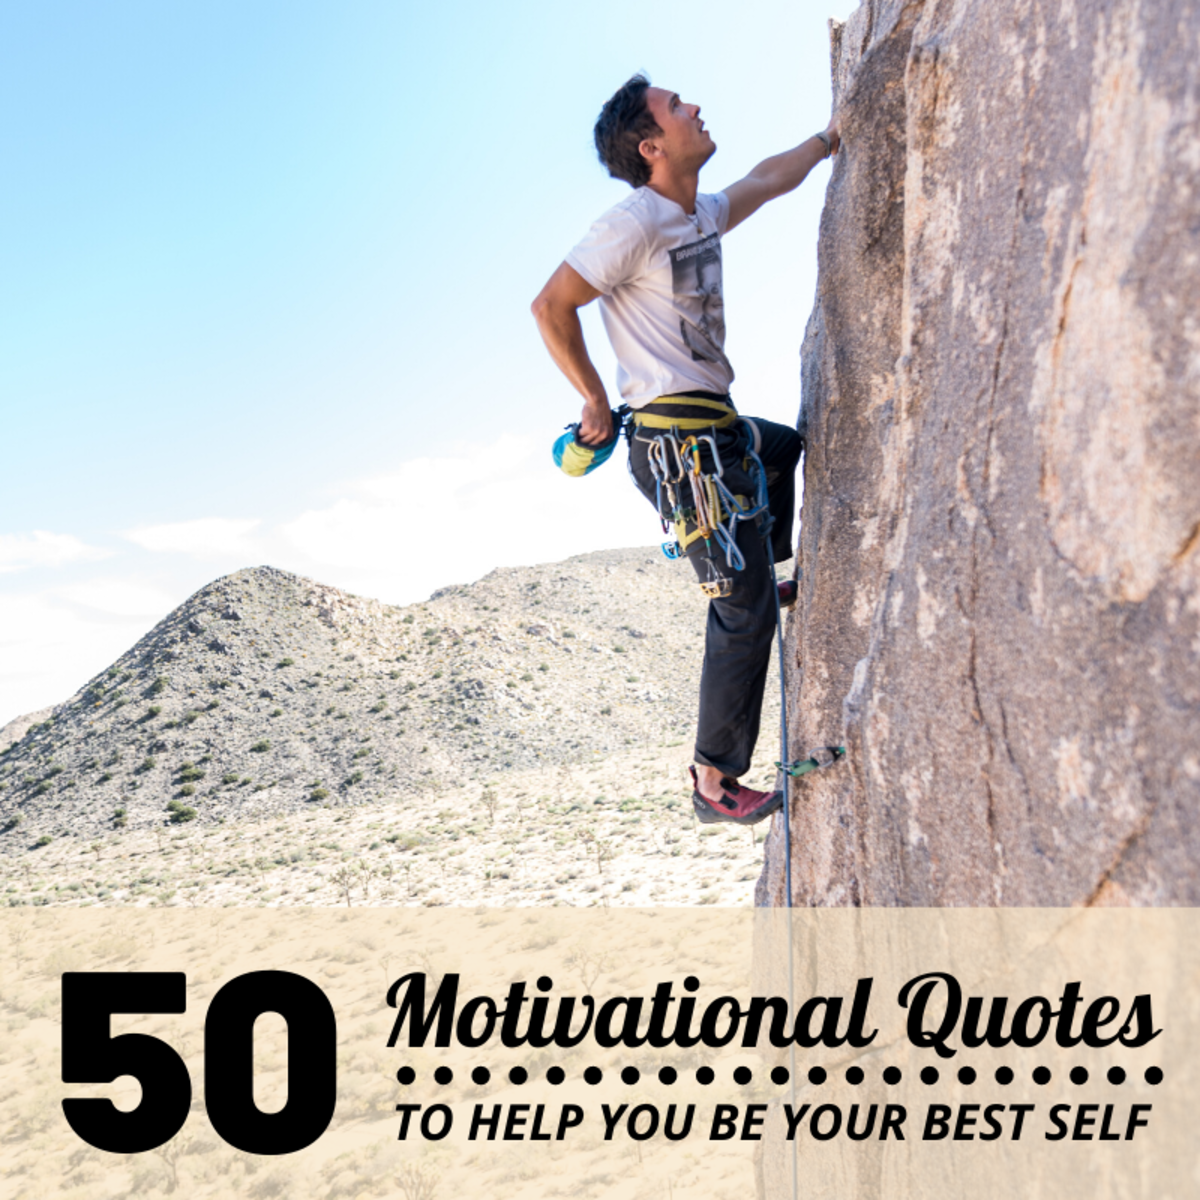 50+ Motivational Quotes to Help You Improve Yourself